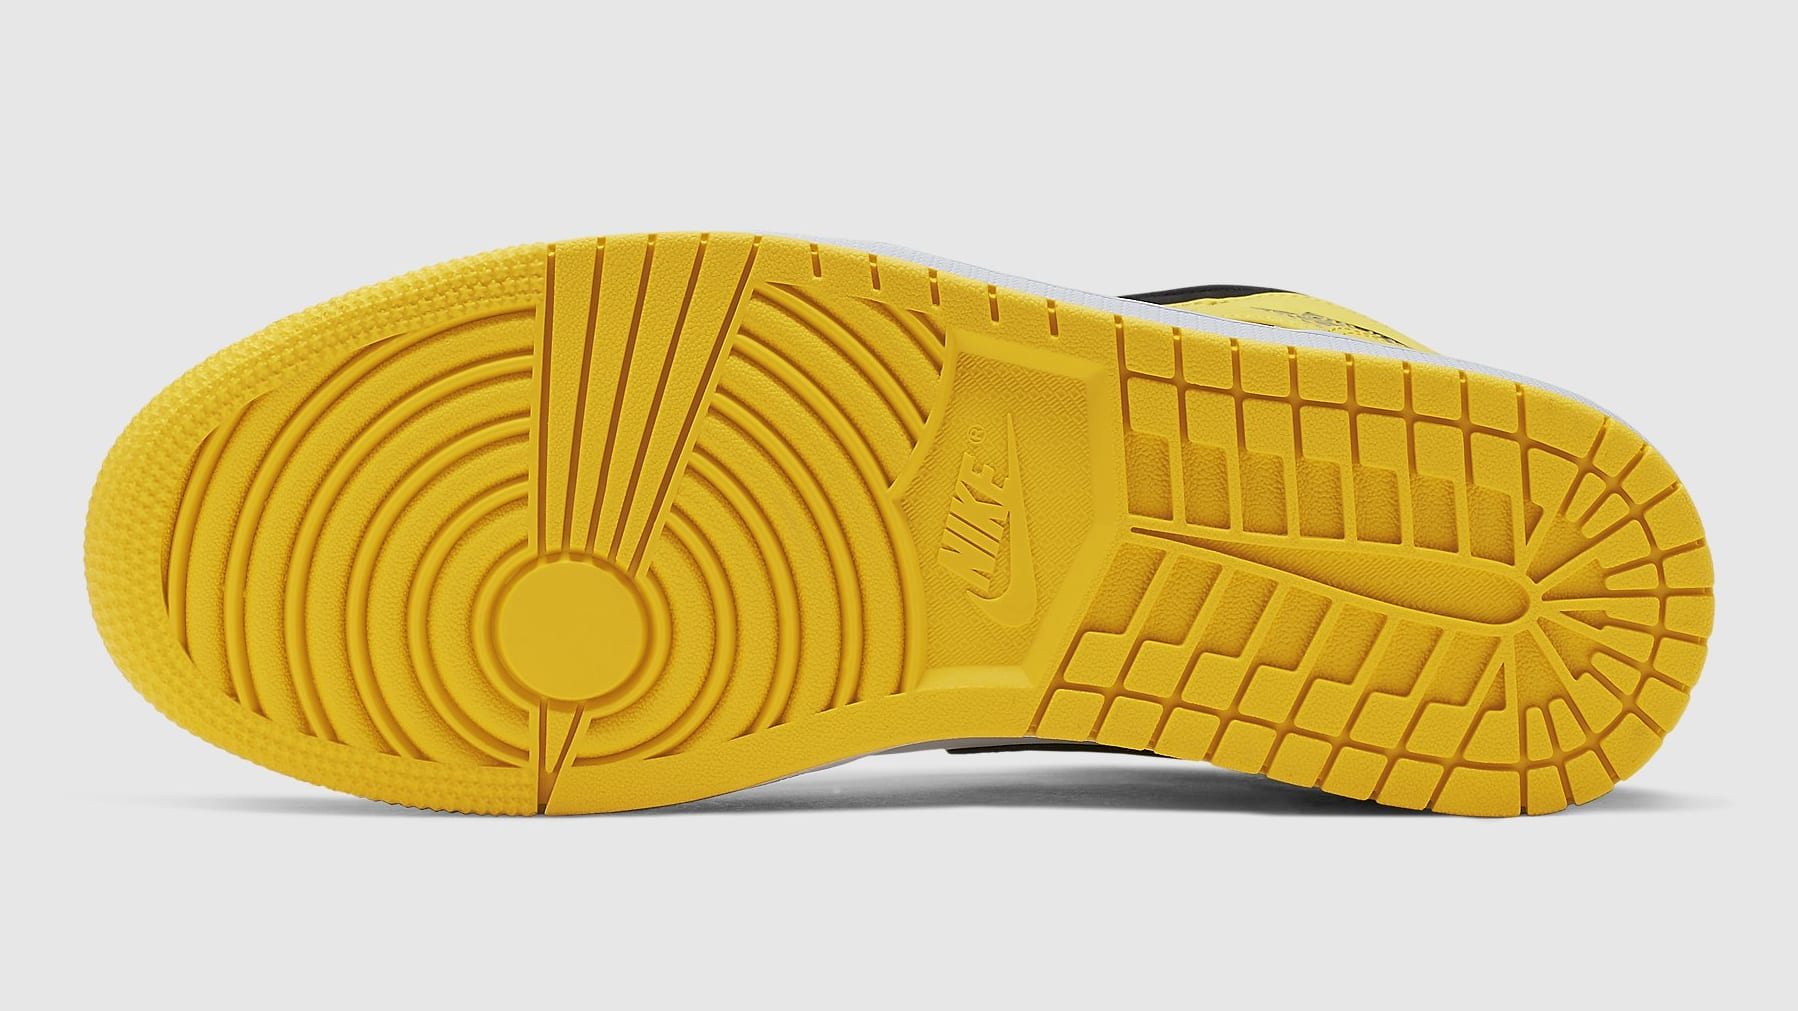 a5a2425e82099 Image via Nike Air Jordan 1 Mid Yellow Toe Release Date 852542-071 Sole